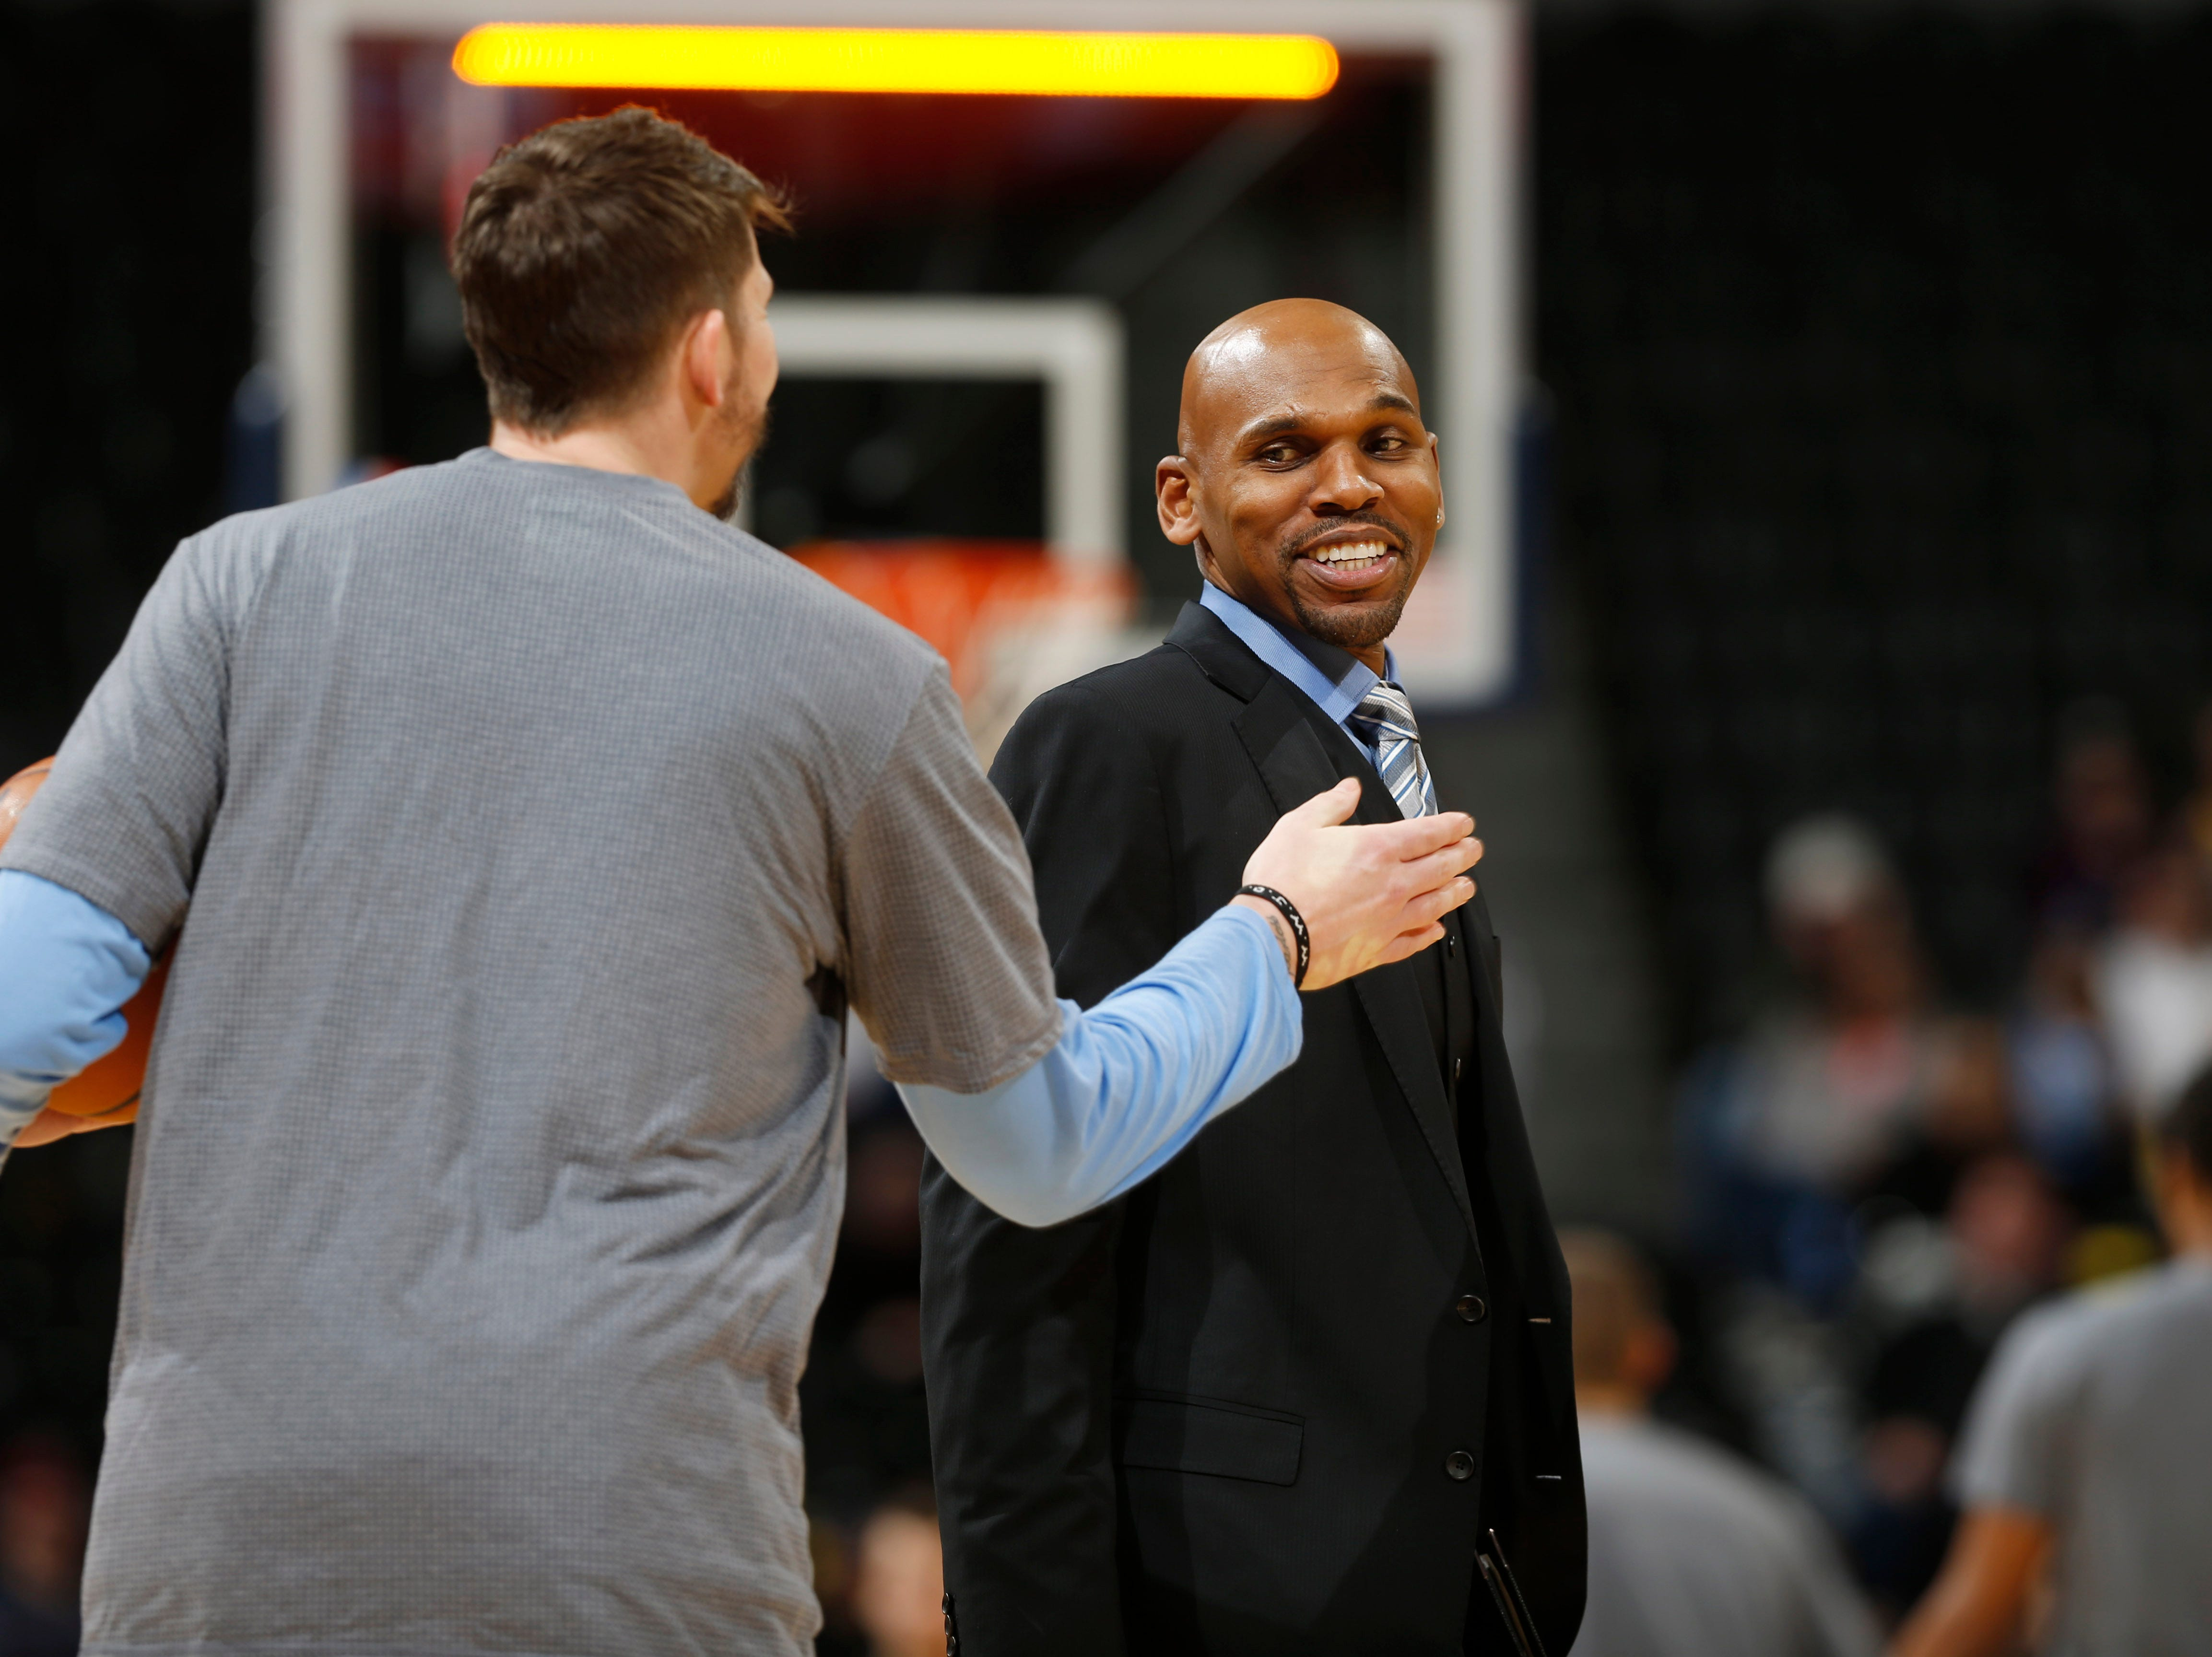 Denver Nuggets guard Mike Miller (3), front, talks with Toronto Raptors assistant coach Jerry Stackhouse in the second half of an NBA basketball game Monday, Feb. 1, 2016, in Denver. The Nuggets won 112-93.